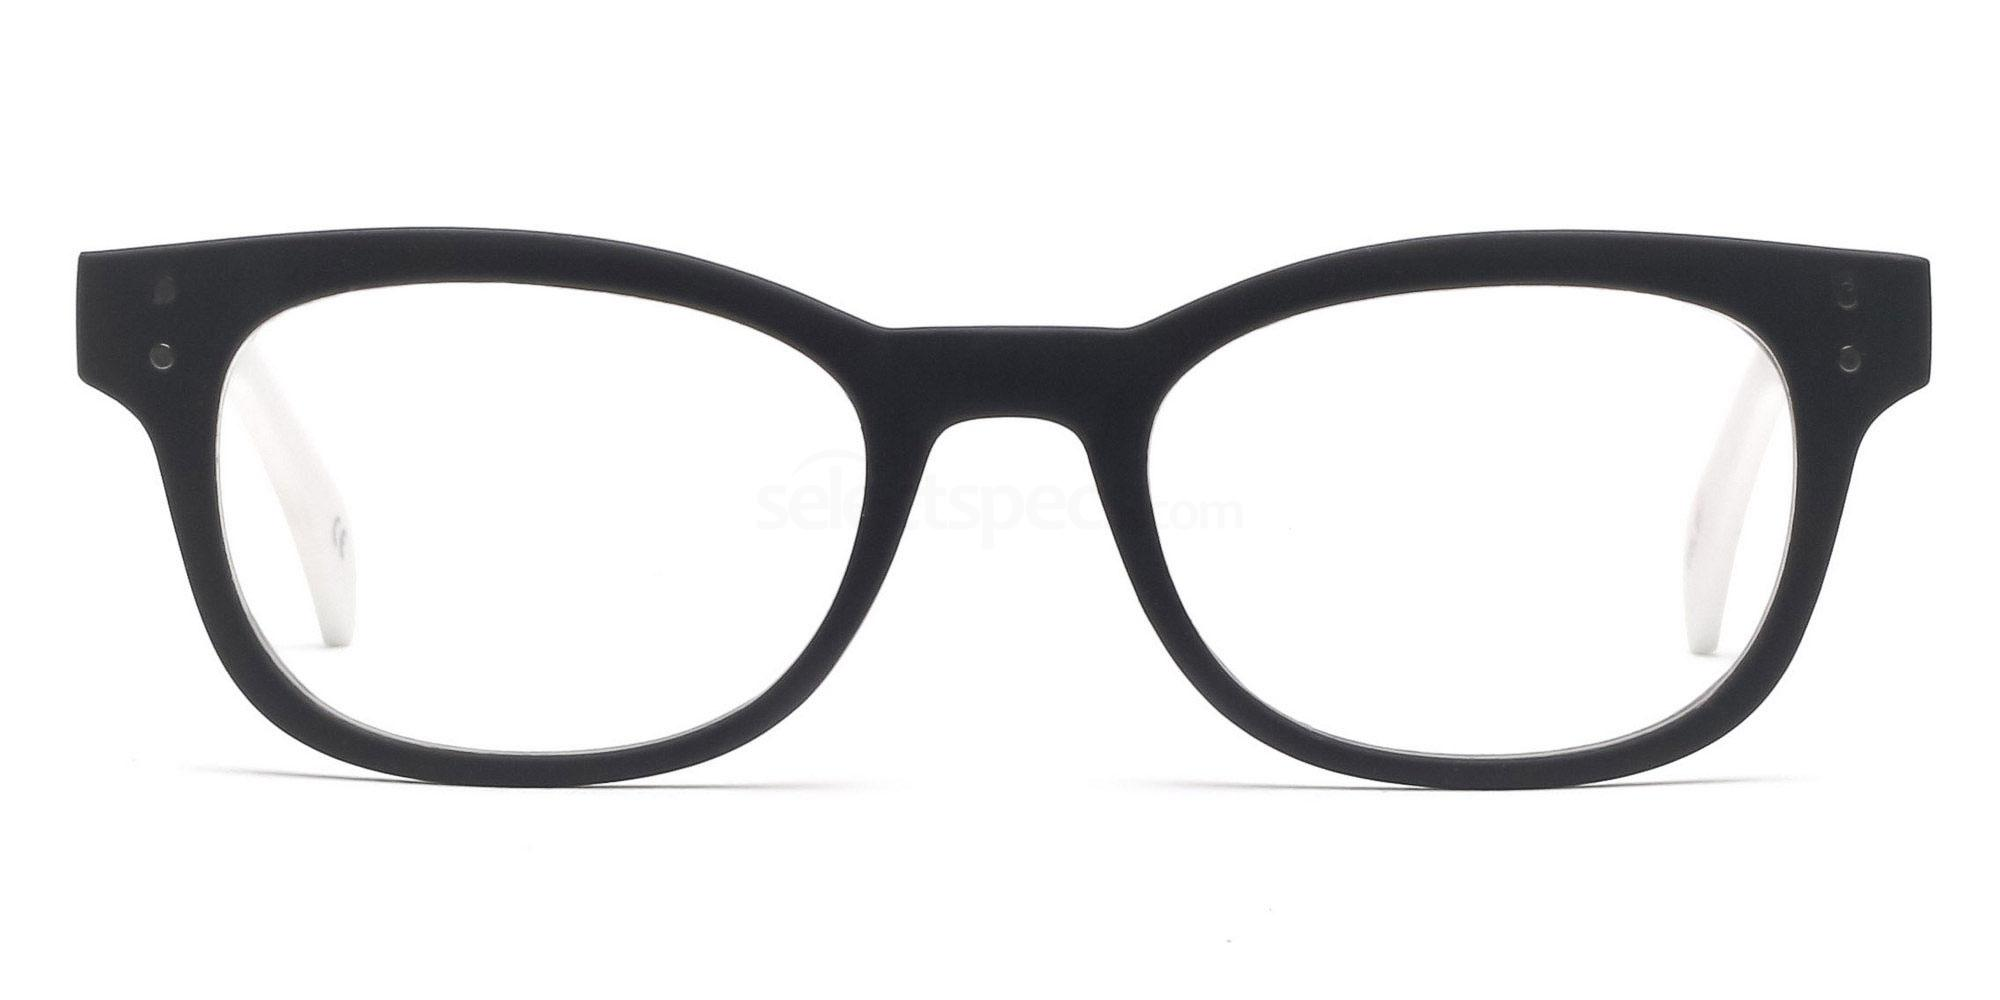 C91 2249 - Matte White Glasses, Savannah